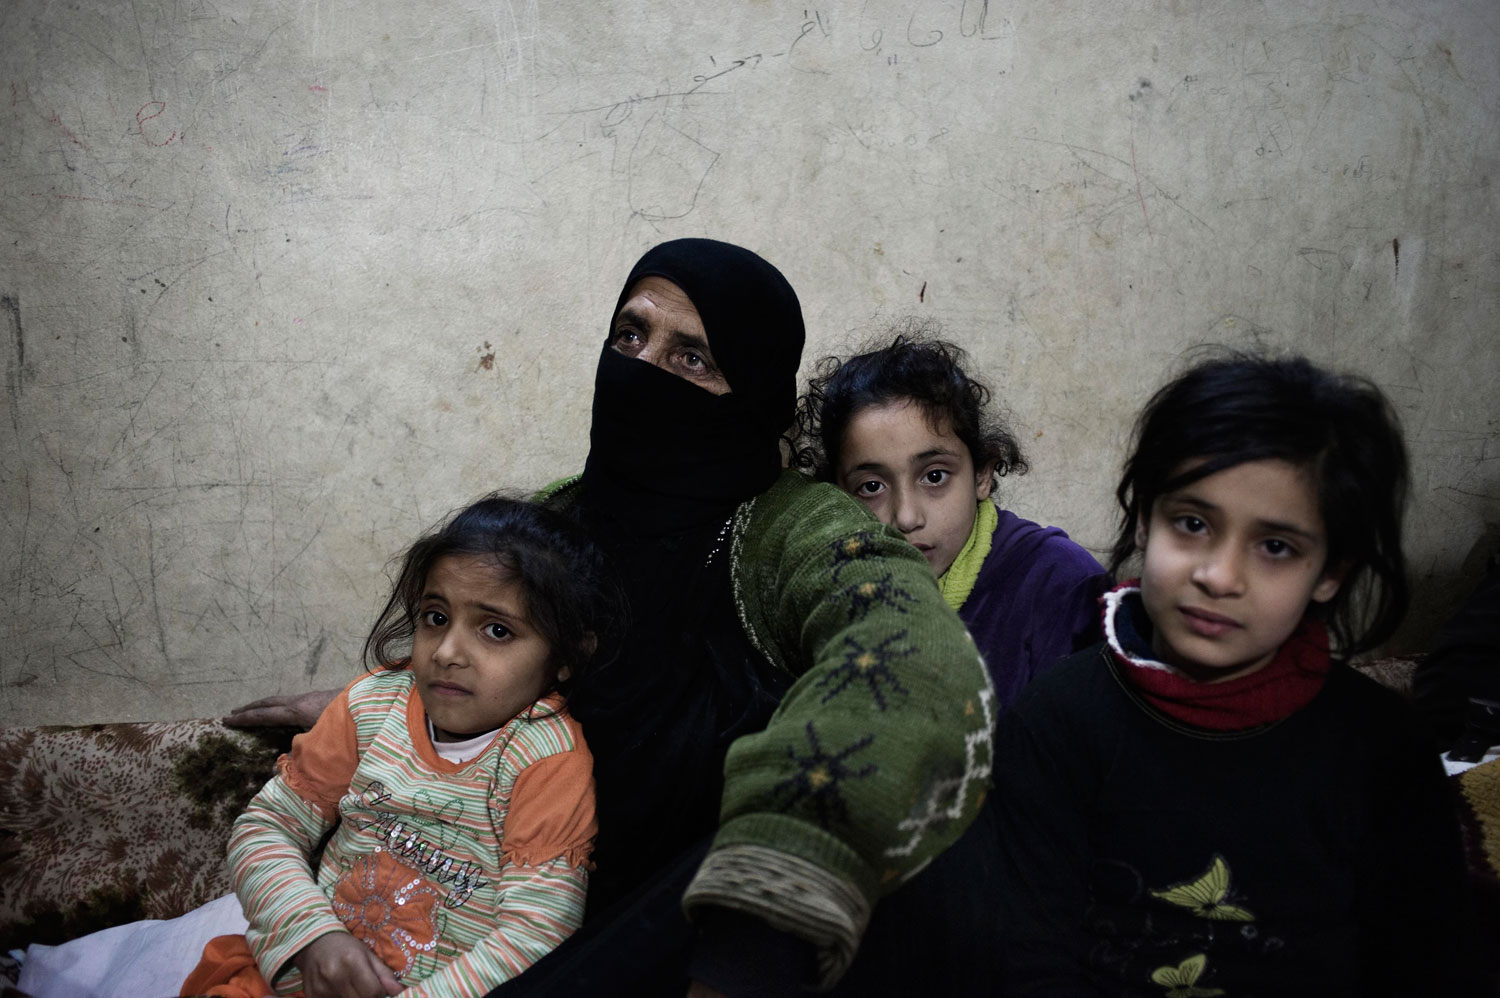 Families seek shelter from rocket attacks in Bab Amr. Feb. 6, 2012